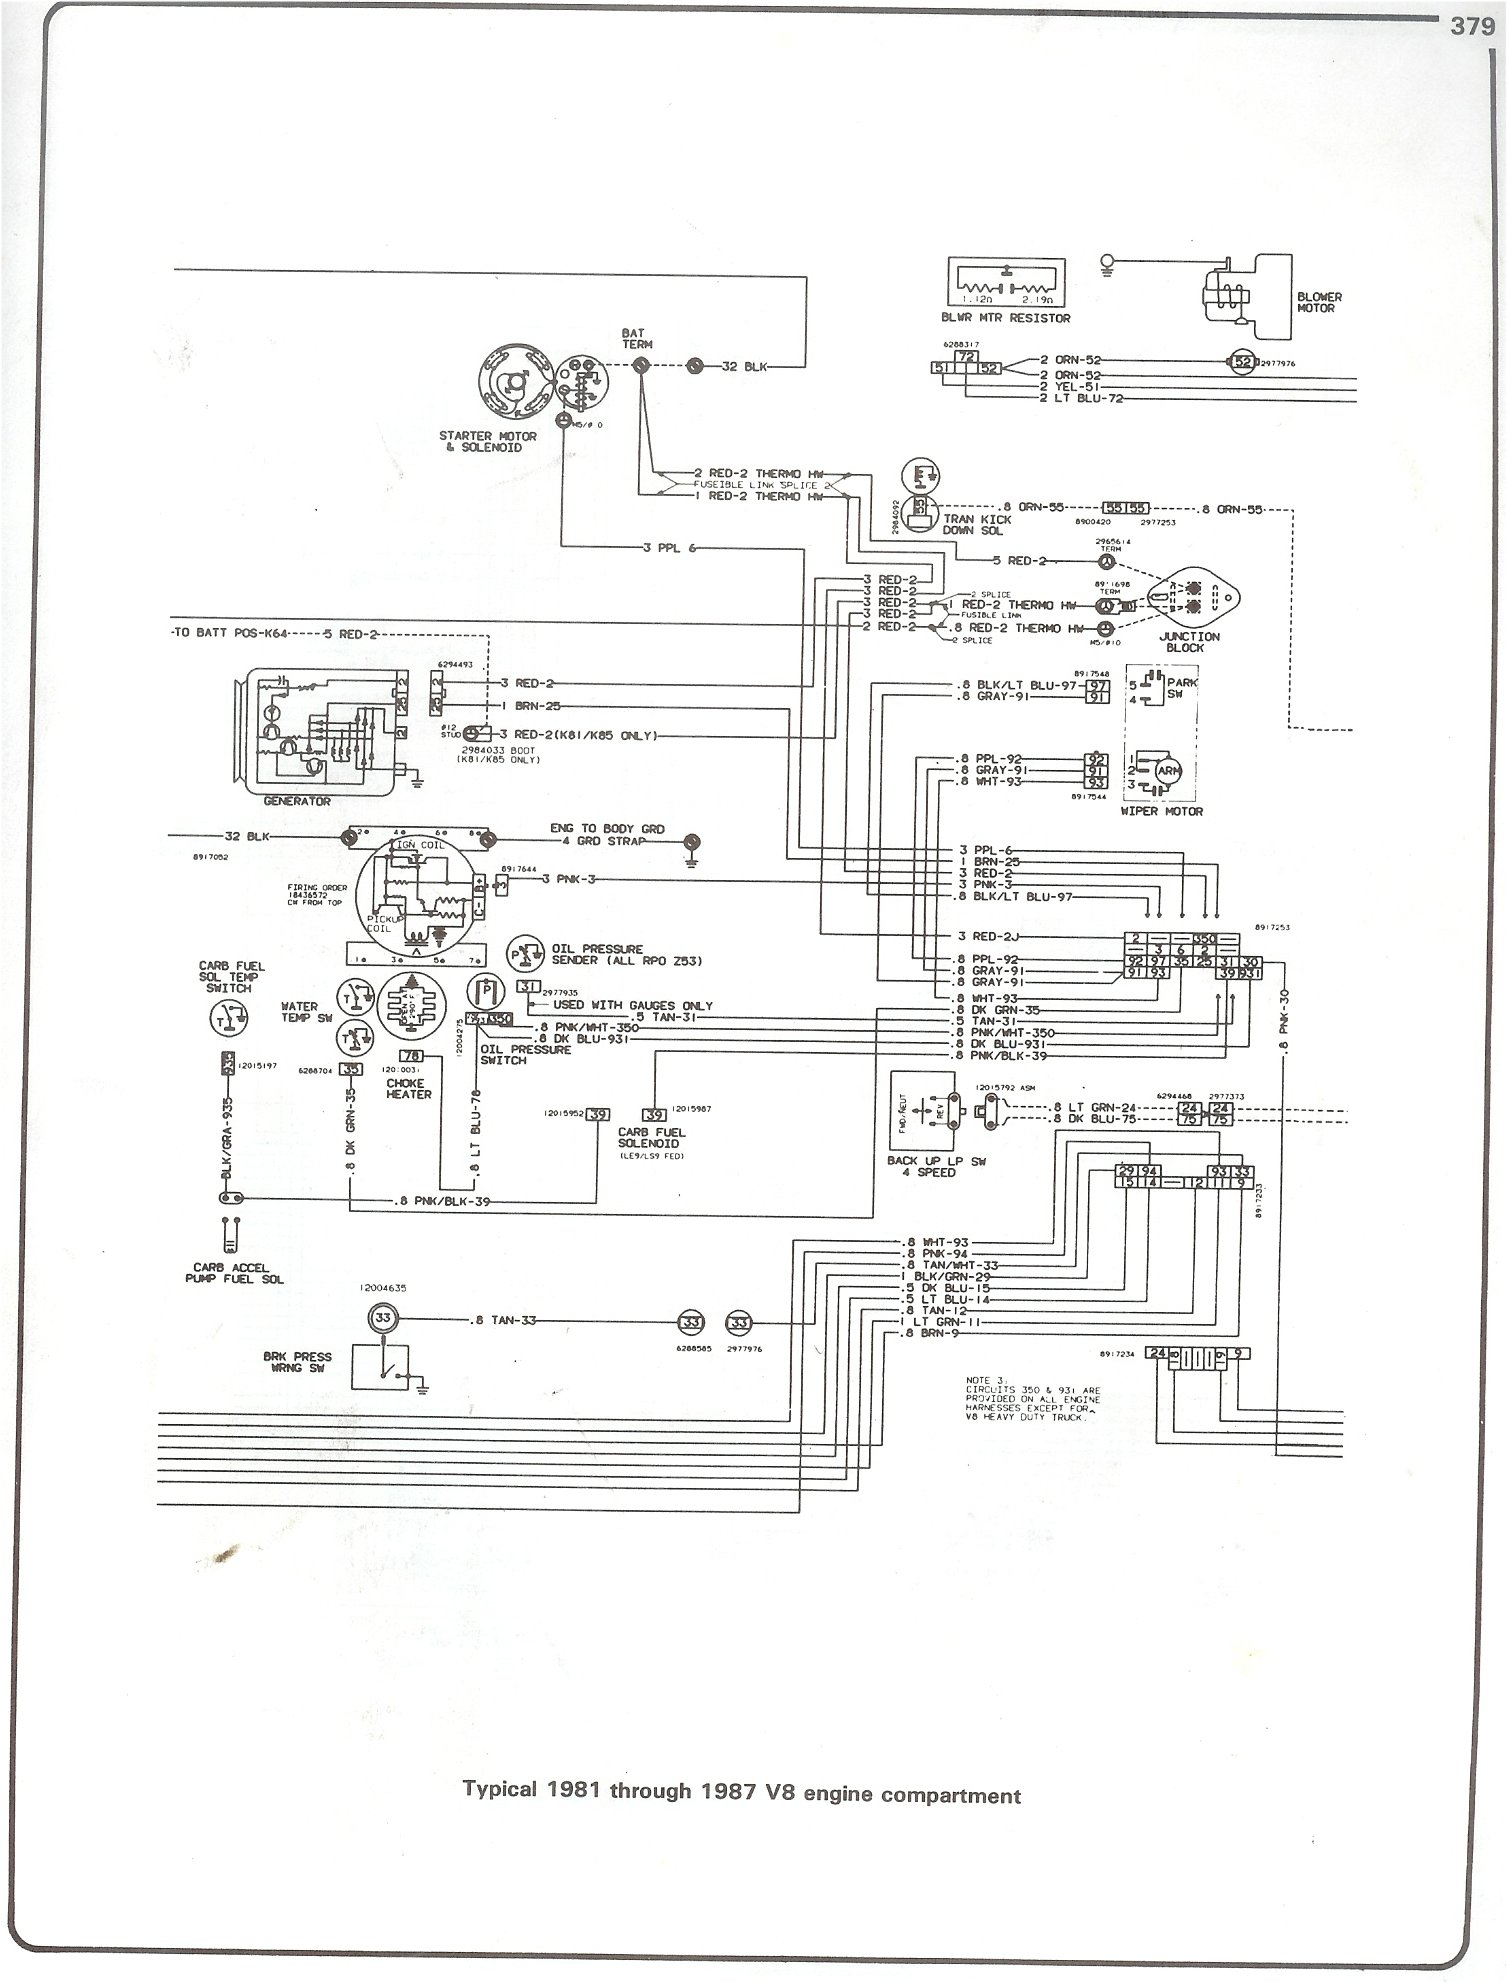 Marvelous 79 Blazer Wiring Diagram Wiring Diagram Database Wiring Cloud Grayisramohammedshrineorg